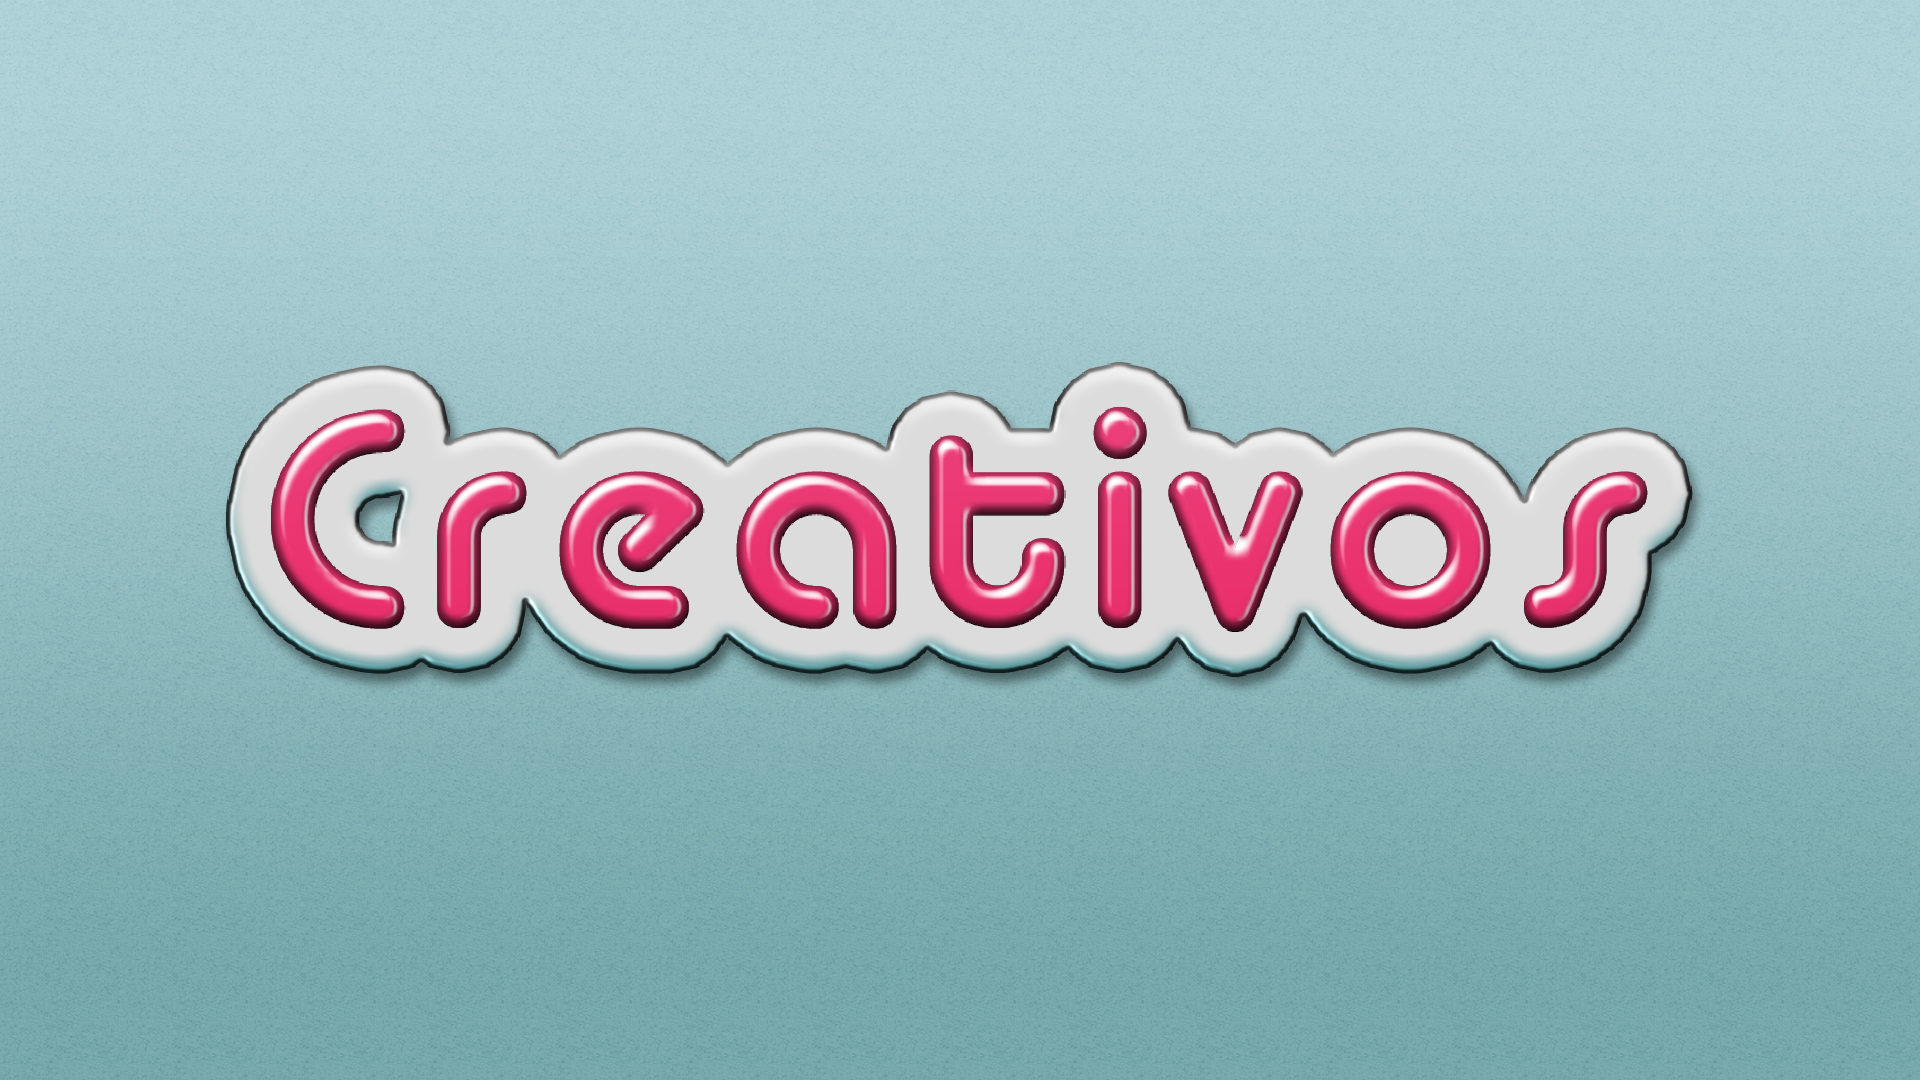 efecto de texto 3d candy photoshop